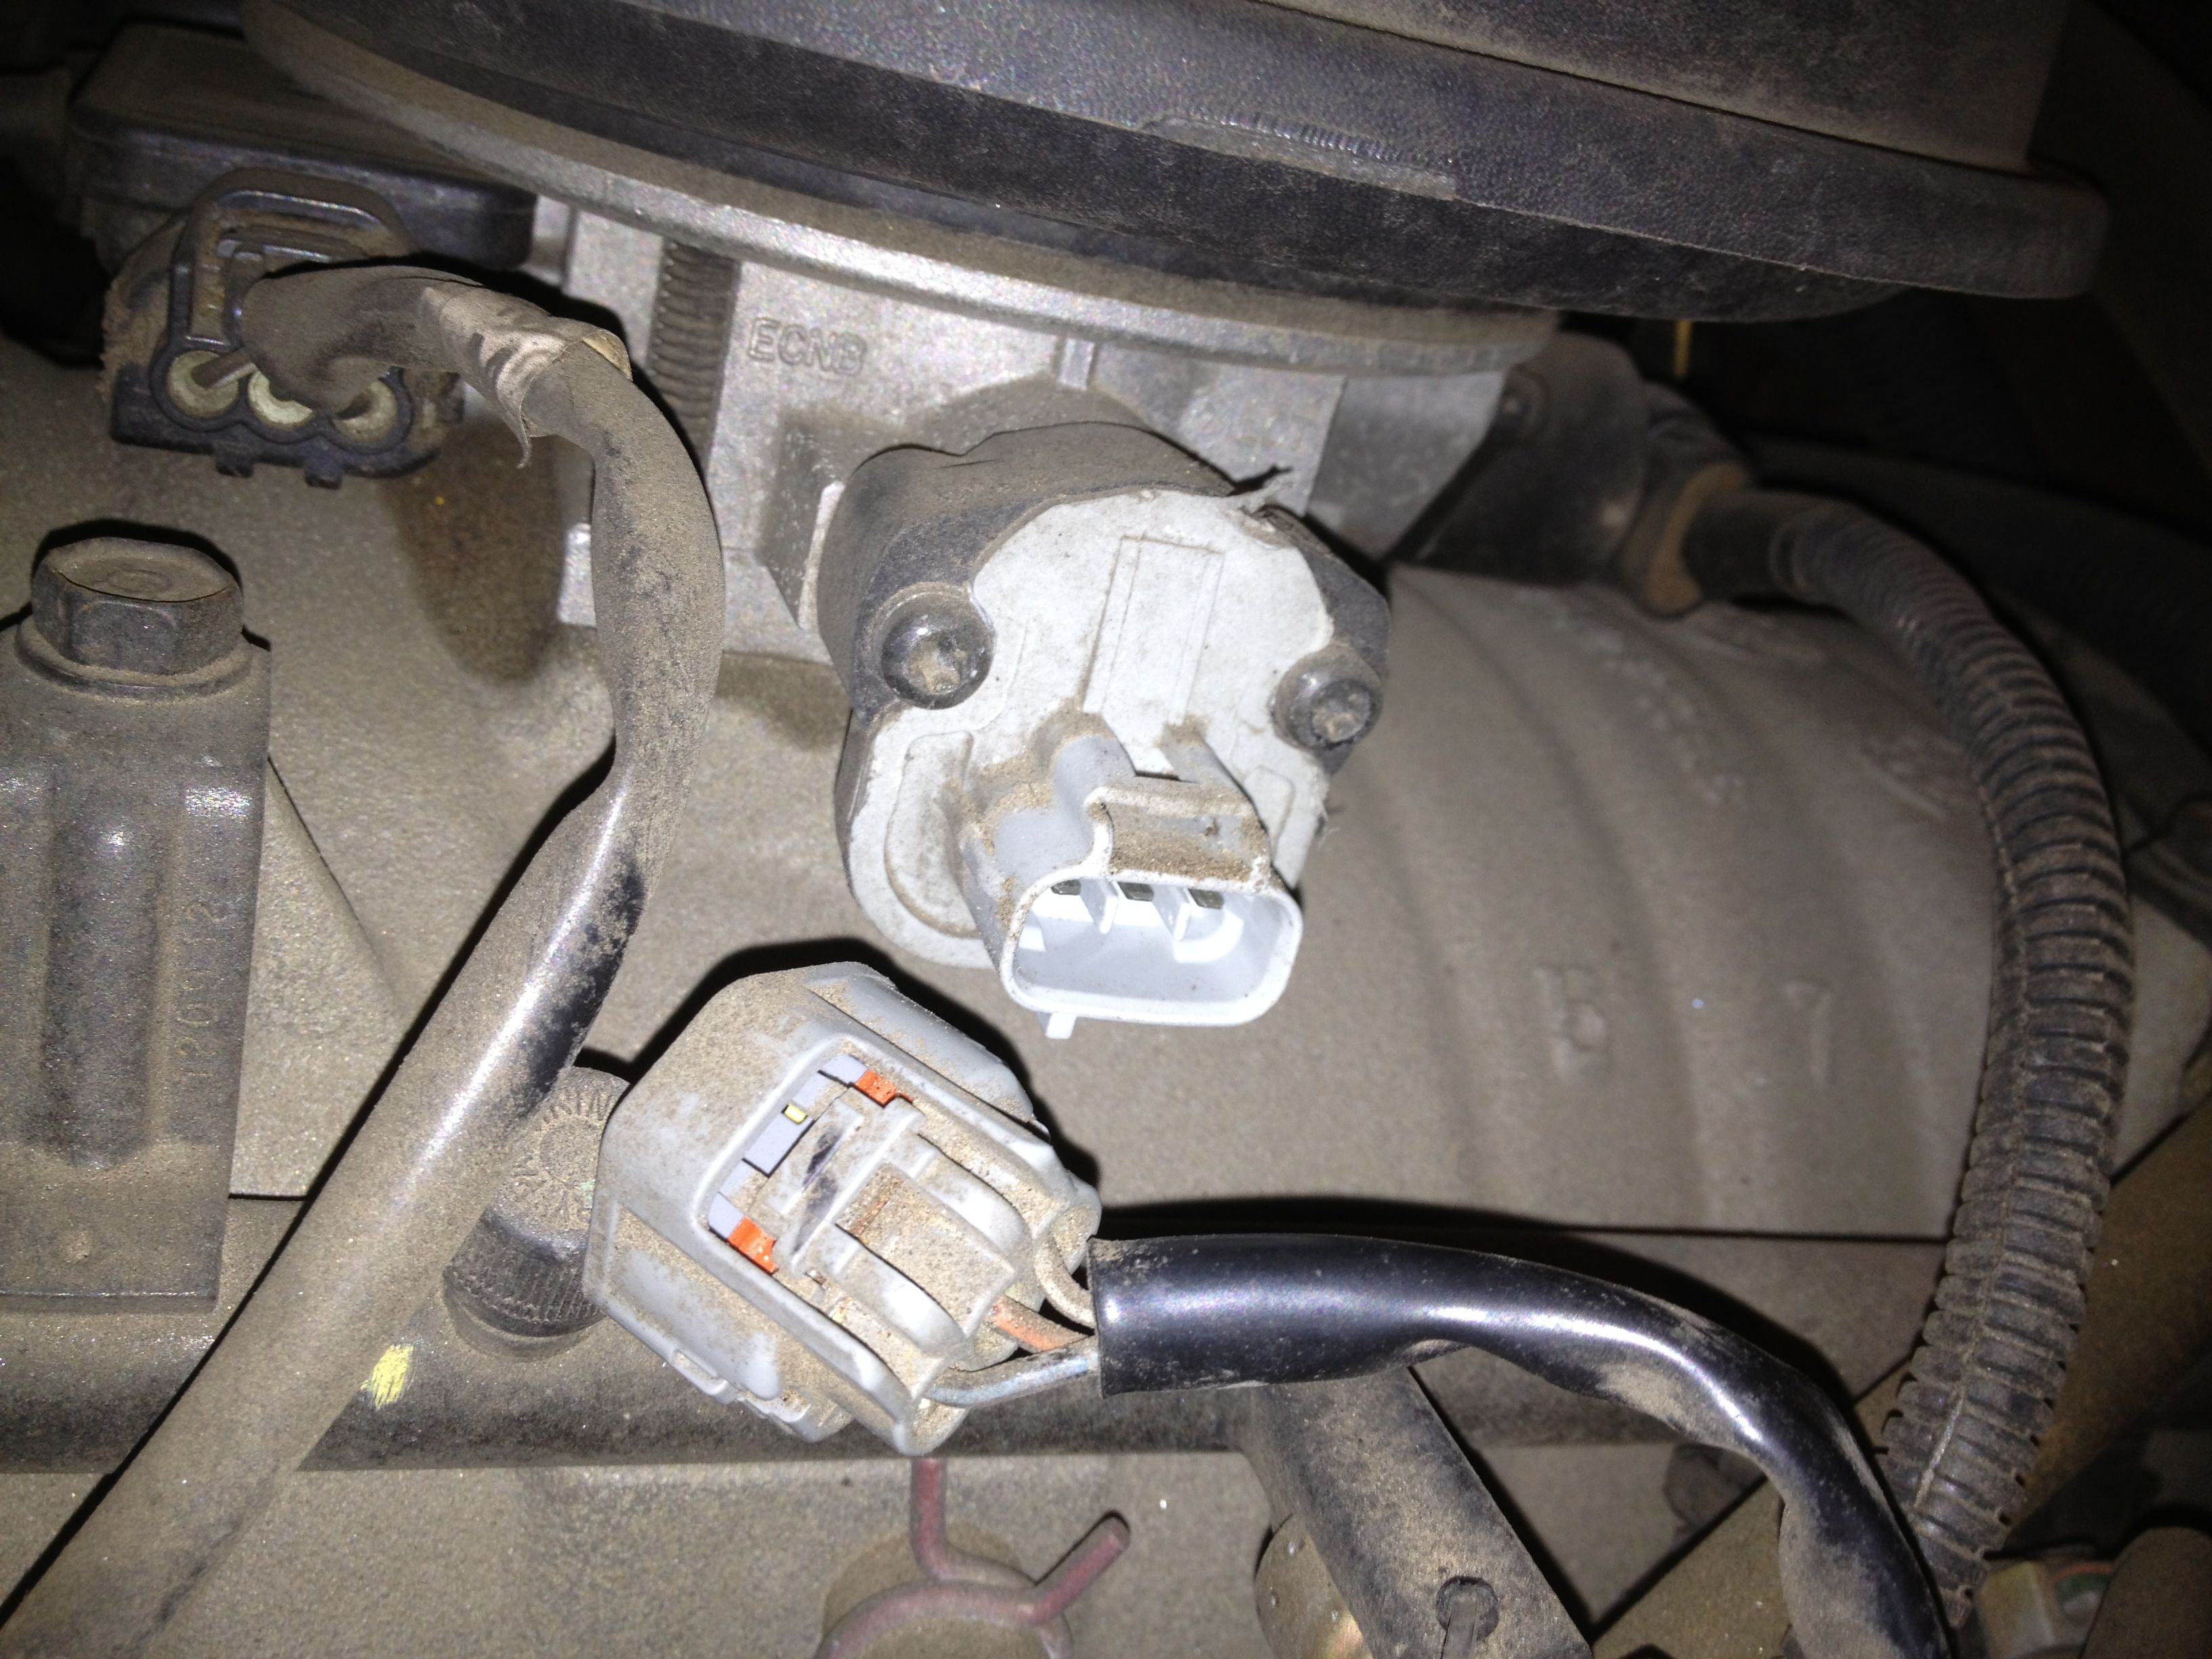 Fixing Dodge Durango Transmission Problems By Replacing Sensors 2007 Fuel Filter The Sensor Is Easy To Access On Side Of Throttle Body